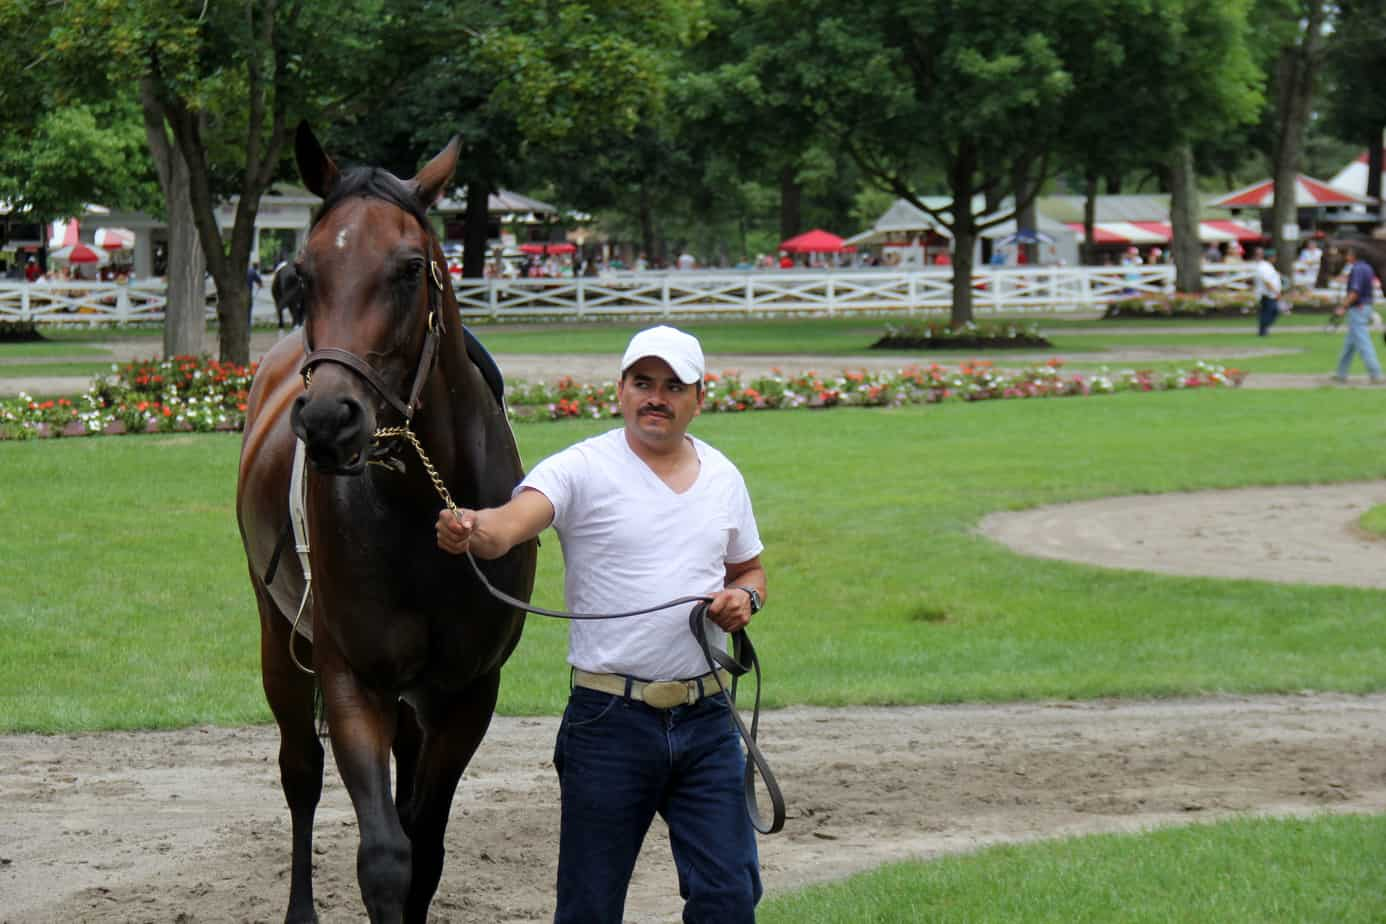 Horse is the star at Saratoga Race Course